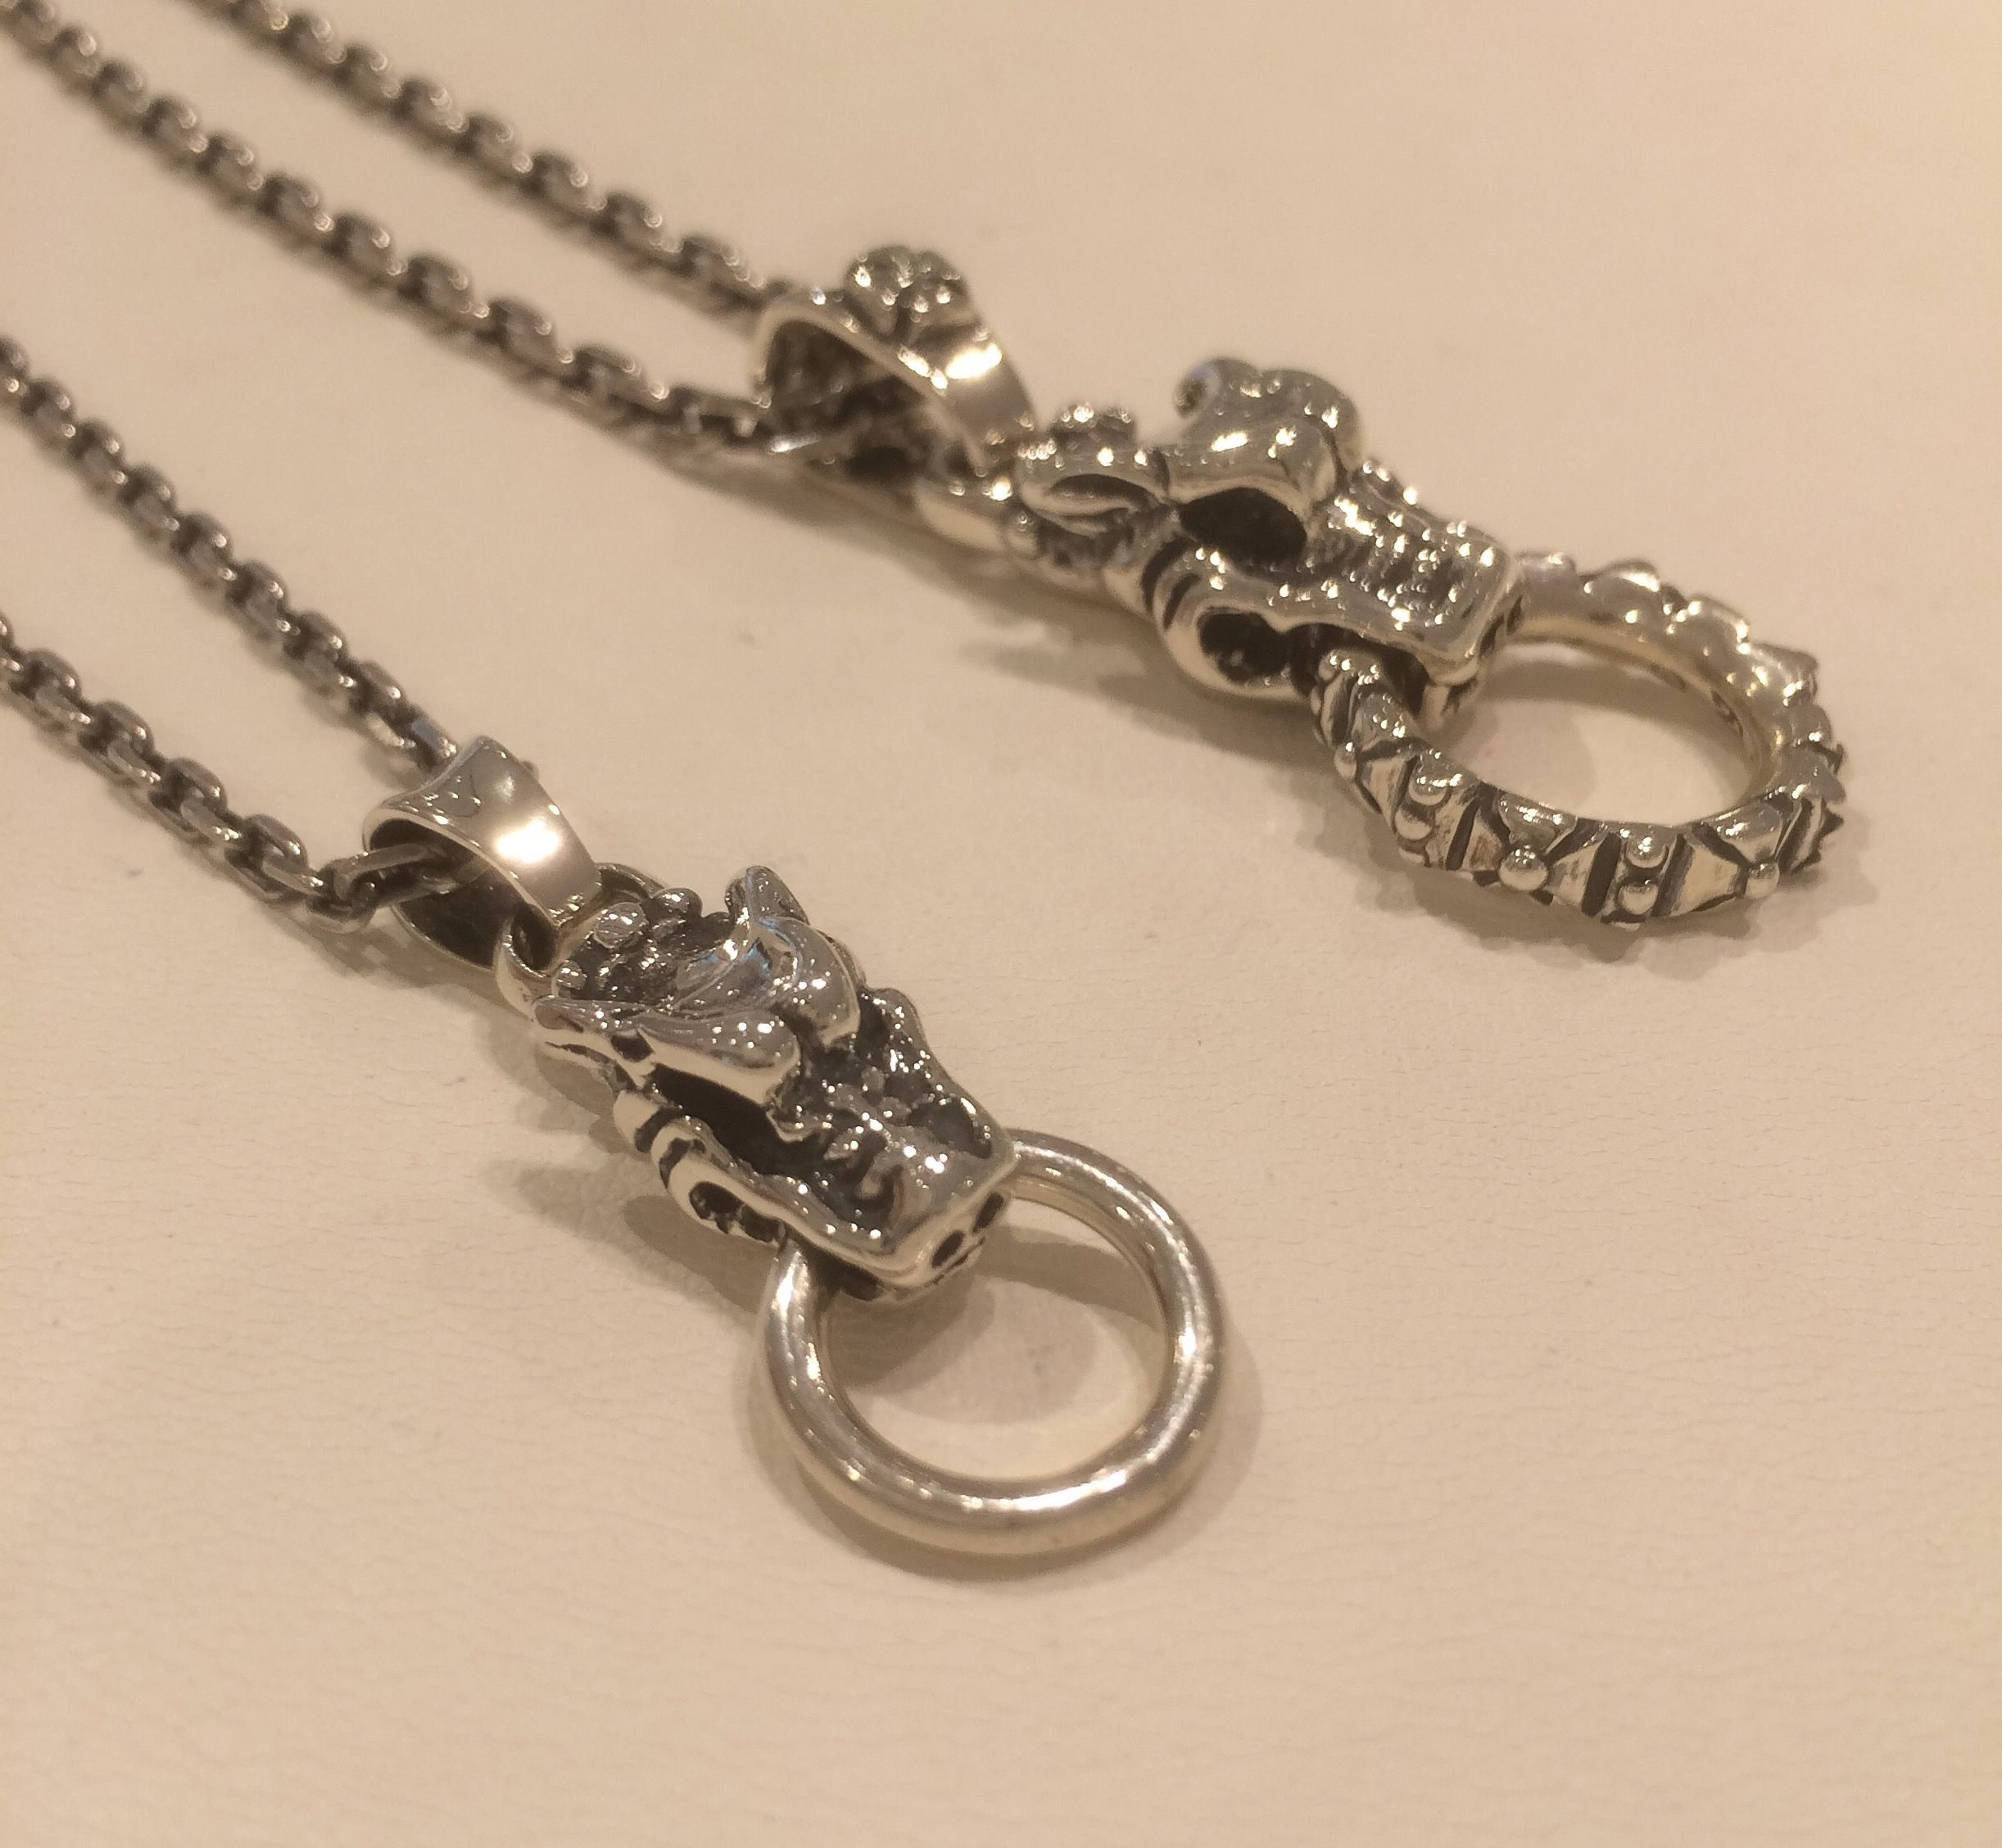 CHS058 GARGOYLE GHARM ¥36,720-(tax in) PDS021 GARGOYLE PRNDANT WITH CROSS BALE ANDFORMEE RING ¥74,520-(Tax in)